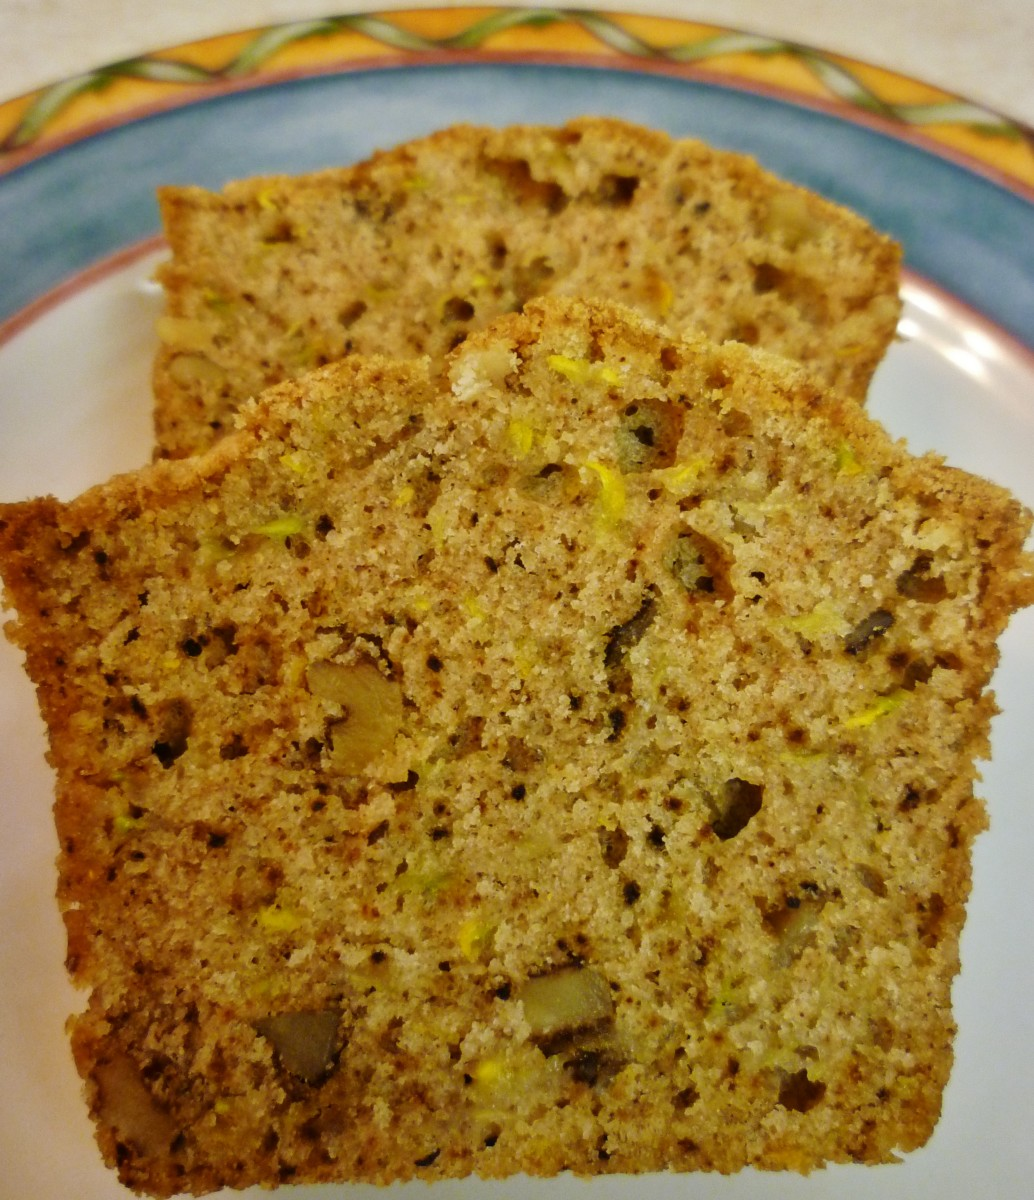 Slices of Delicious Yellow Squash & Walnut Bread